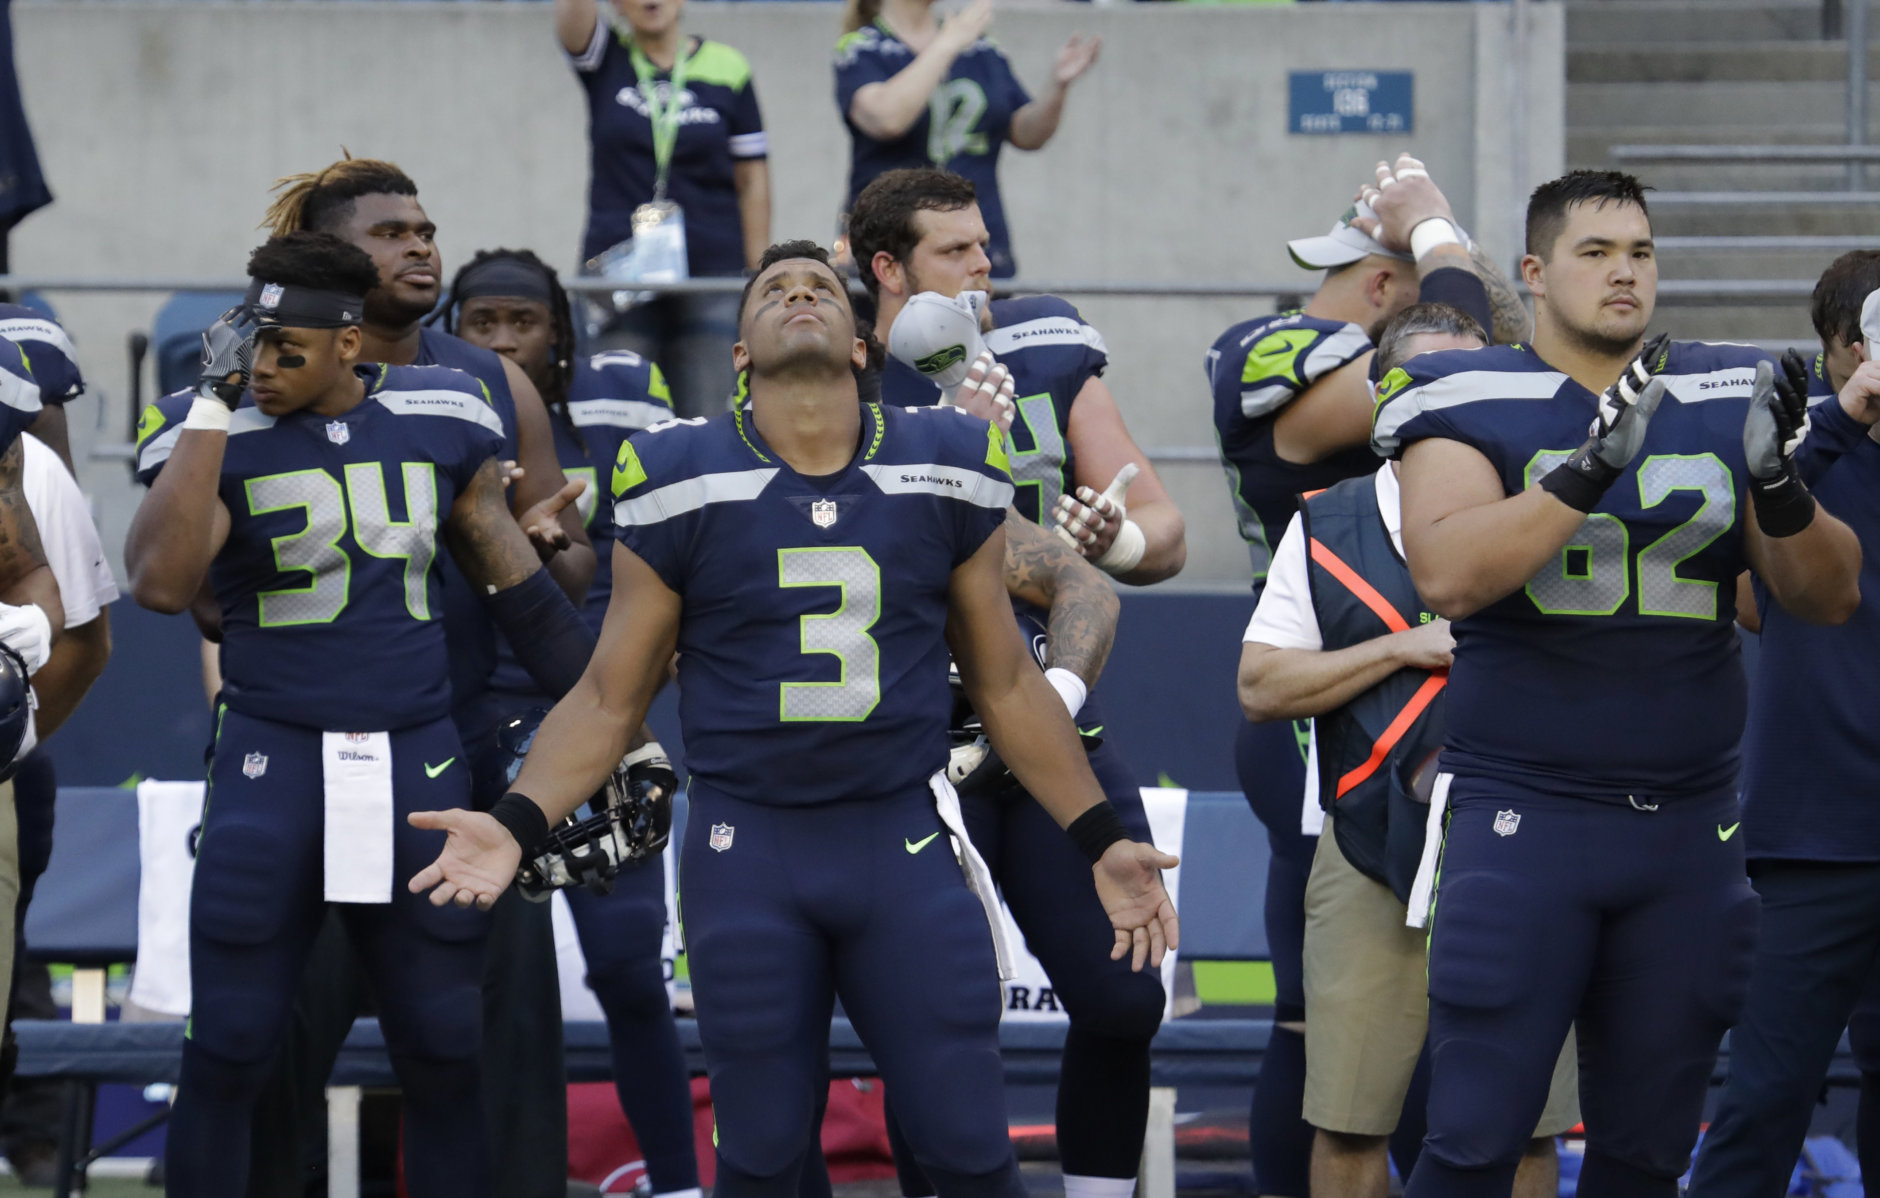 Seattle Seahawks quarterback Russell Wilson (3) gestures as he looks up after the singing of the national anthem before the team's NFL football preseason game against the Oakland Raiders, Thursday, Aug. 30, 2018, in Seattle. (AP Photo/Elaine Thompson)